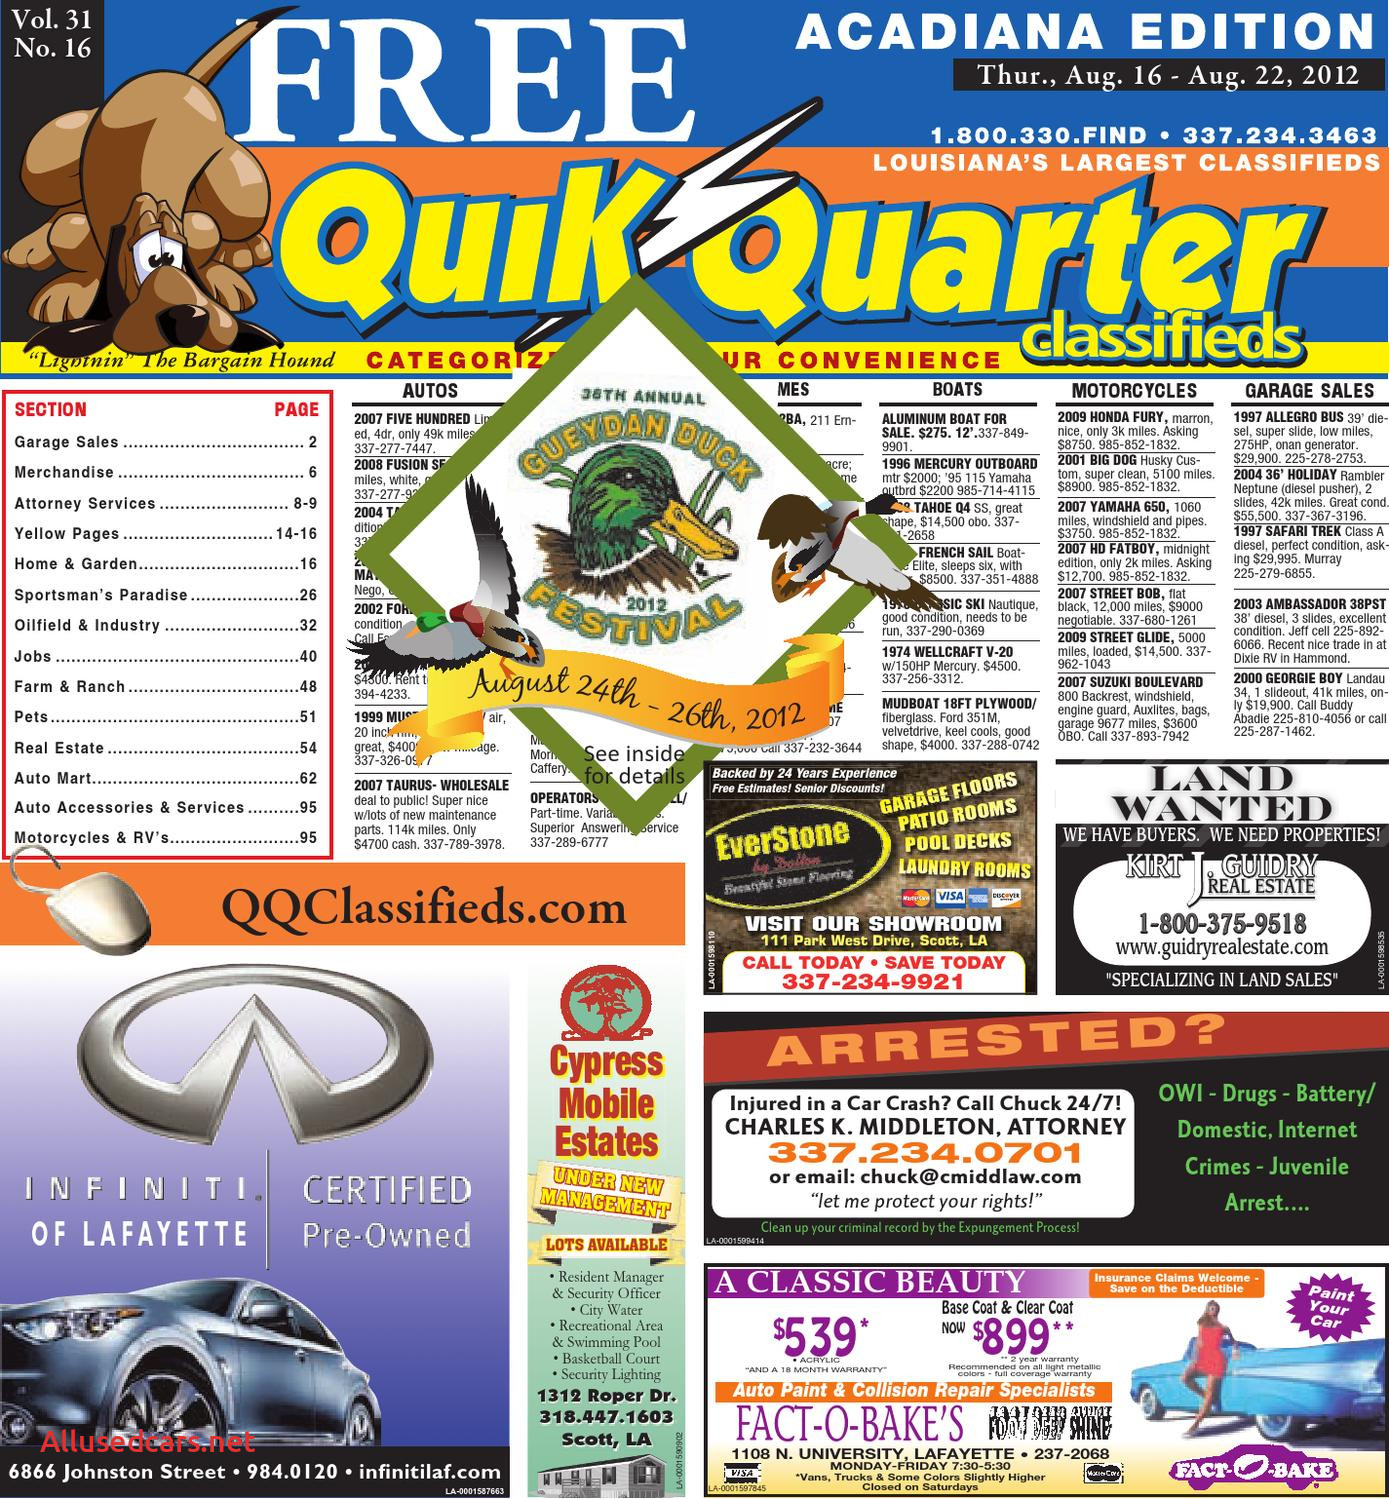 Scion Xb New Qq Acadiana by Part Of the Usa today Network issuu